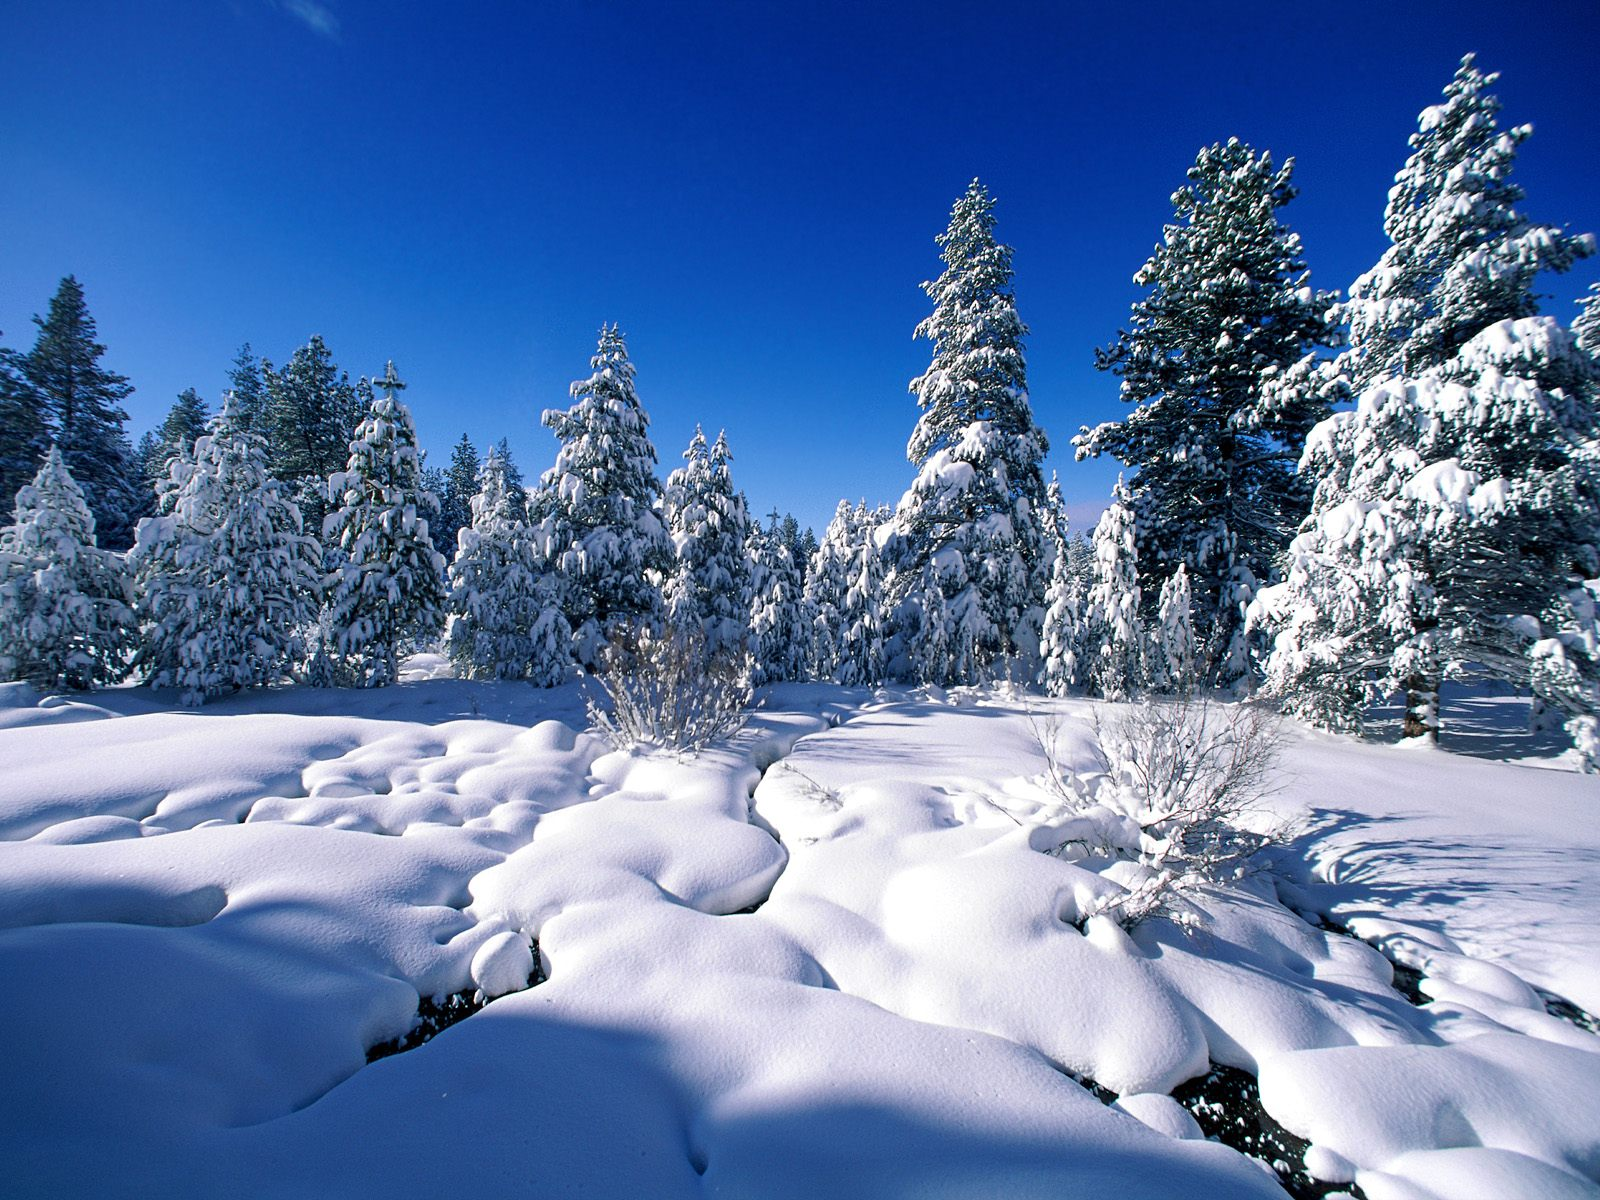 Winter Christmas Desktop Background   Viewing Gallery 1600x1200